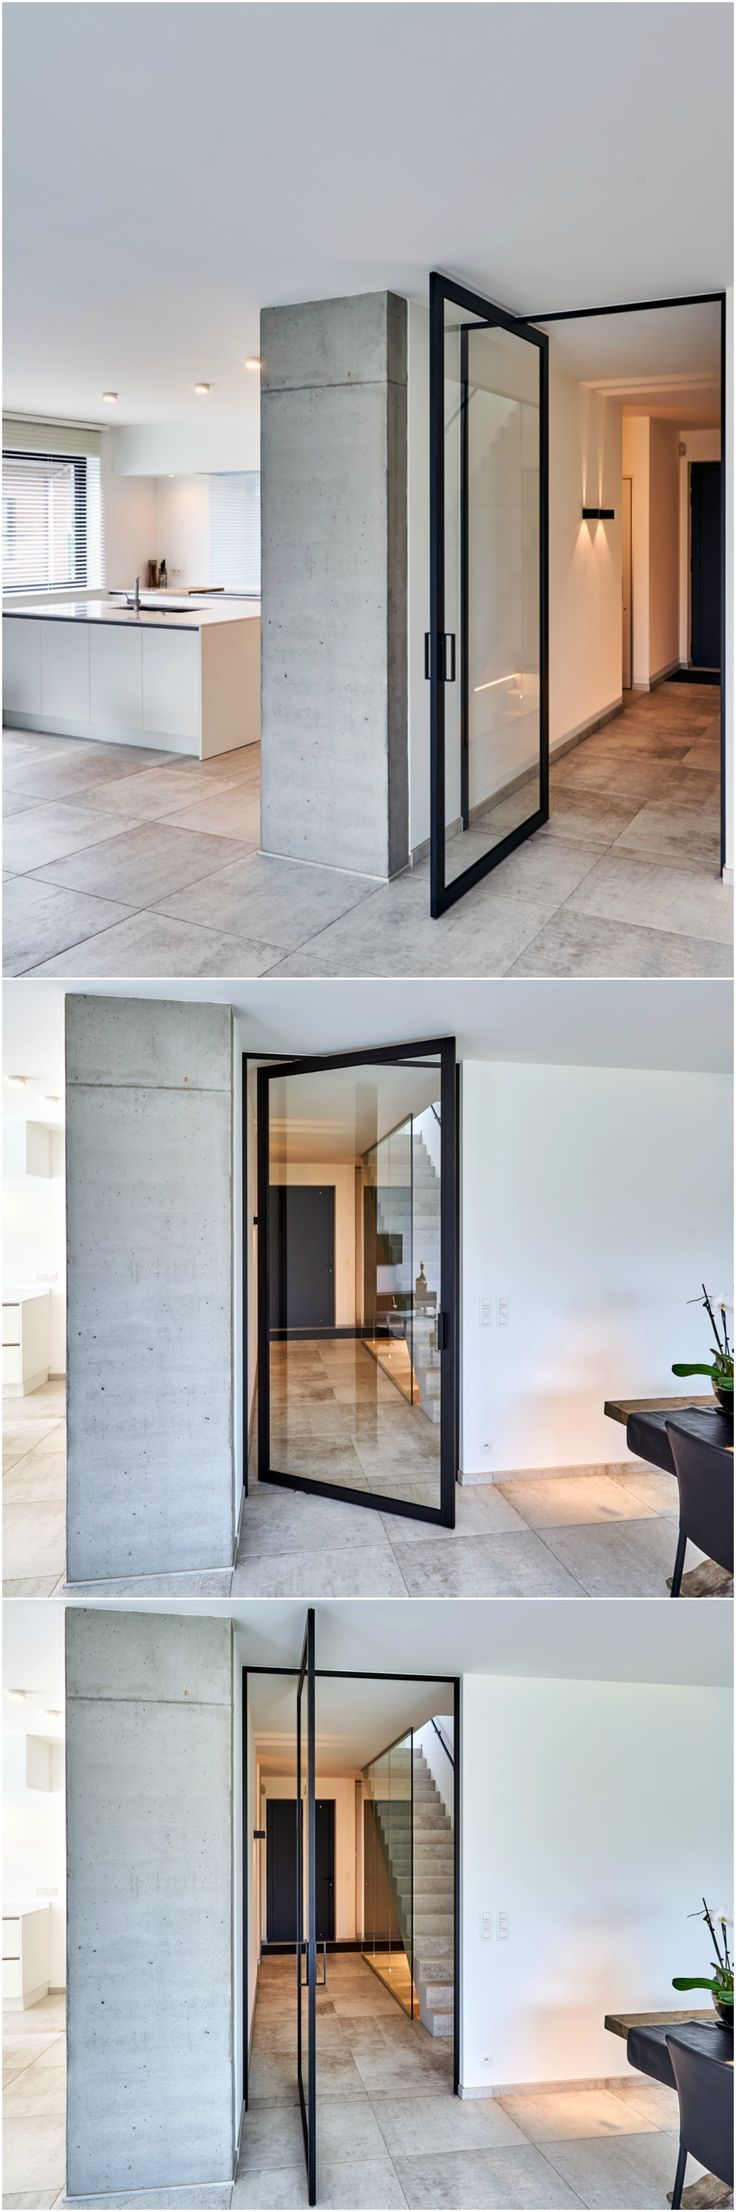 "Modern glass pivot door, custom-made by Anyway Doors. This unique ""steel look"" pivoting door with offset axis pivot hinges doesn't require any parts to be built-in to the floor. #pivotdoor #anywaydoors"